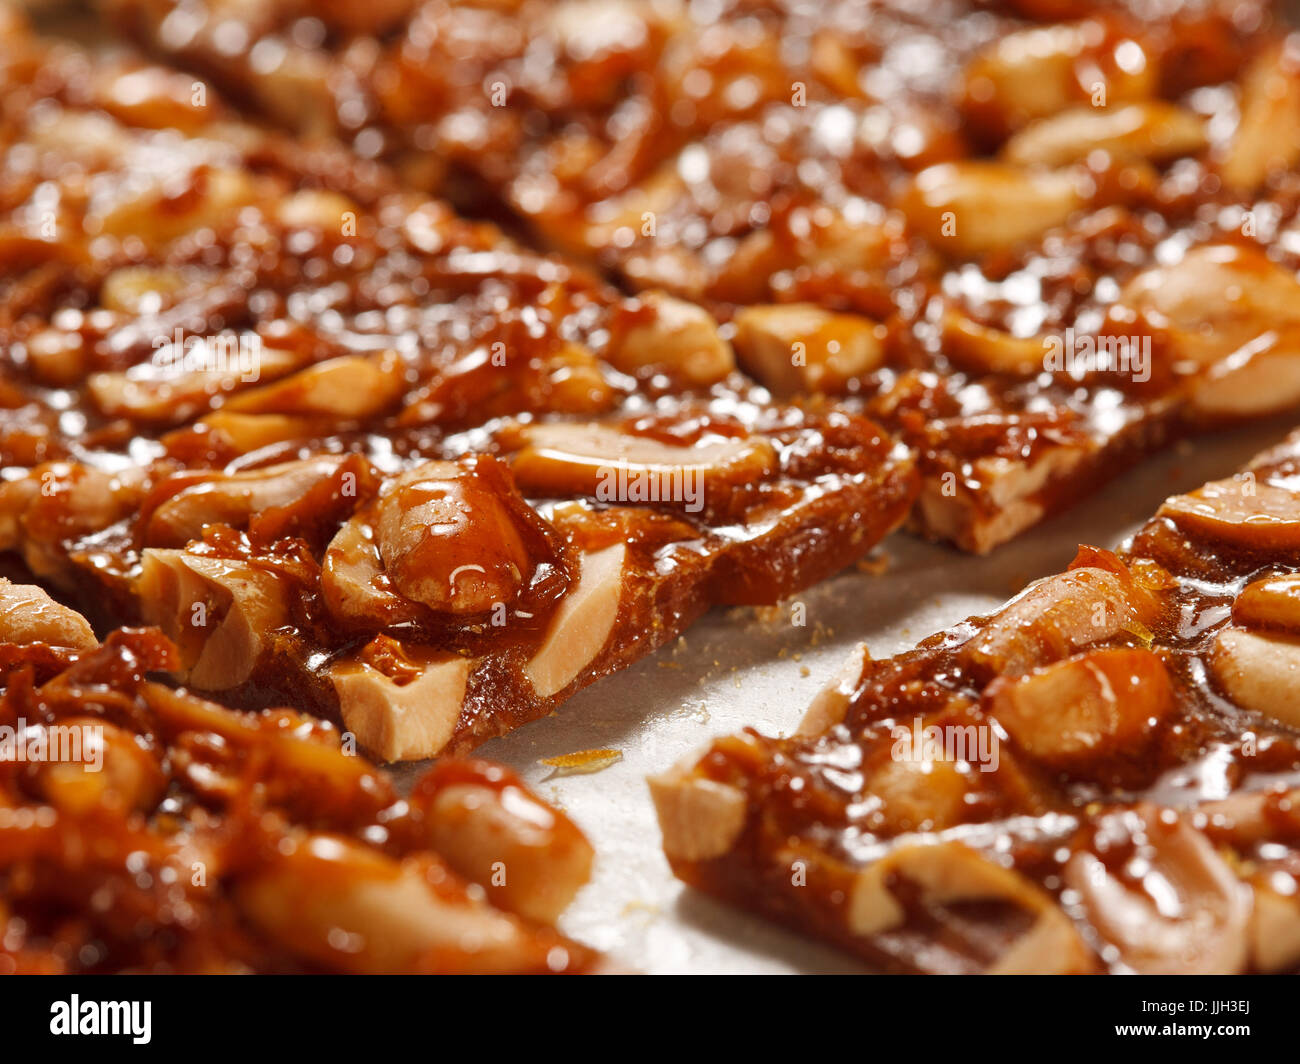 peanut brittle - Stock Image